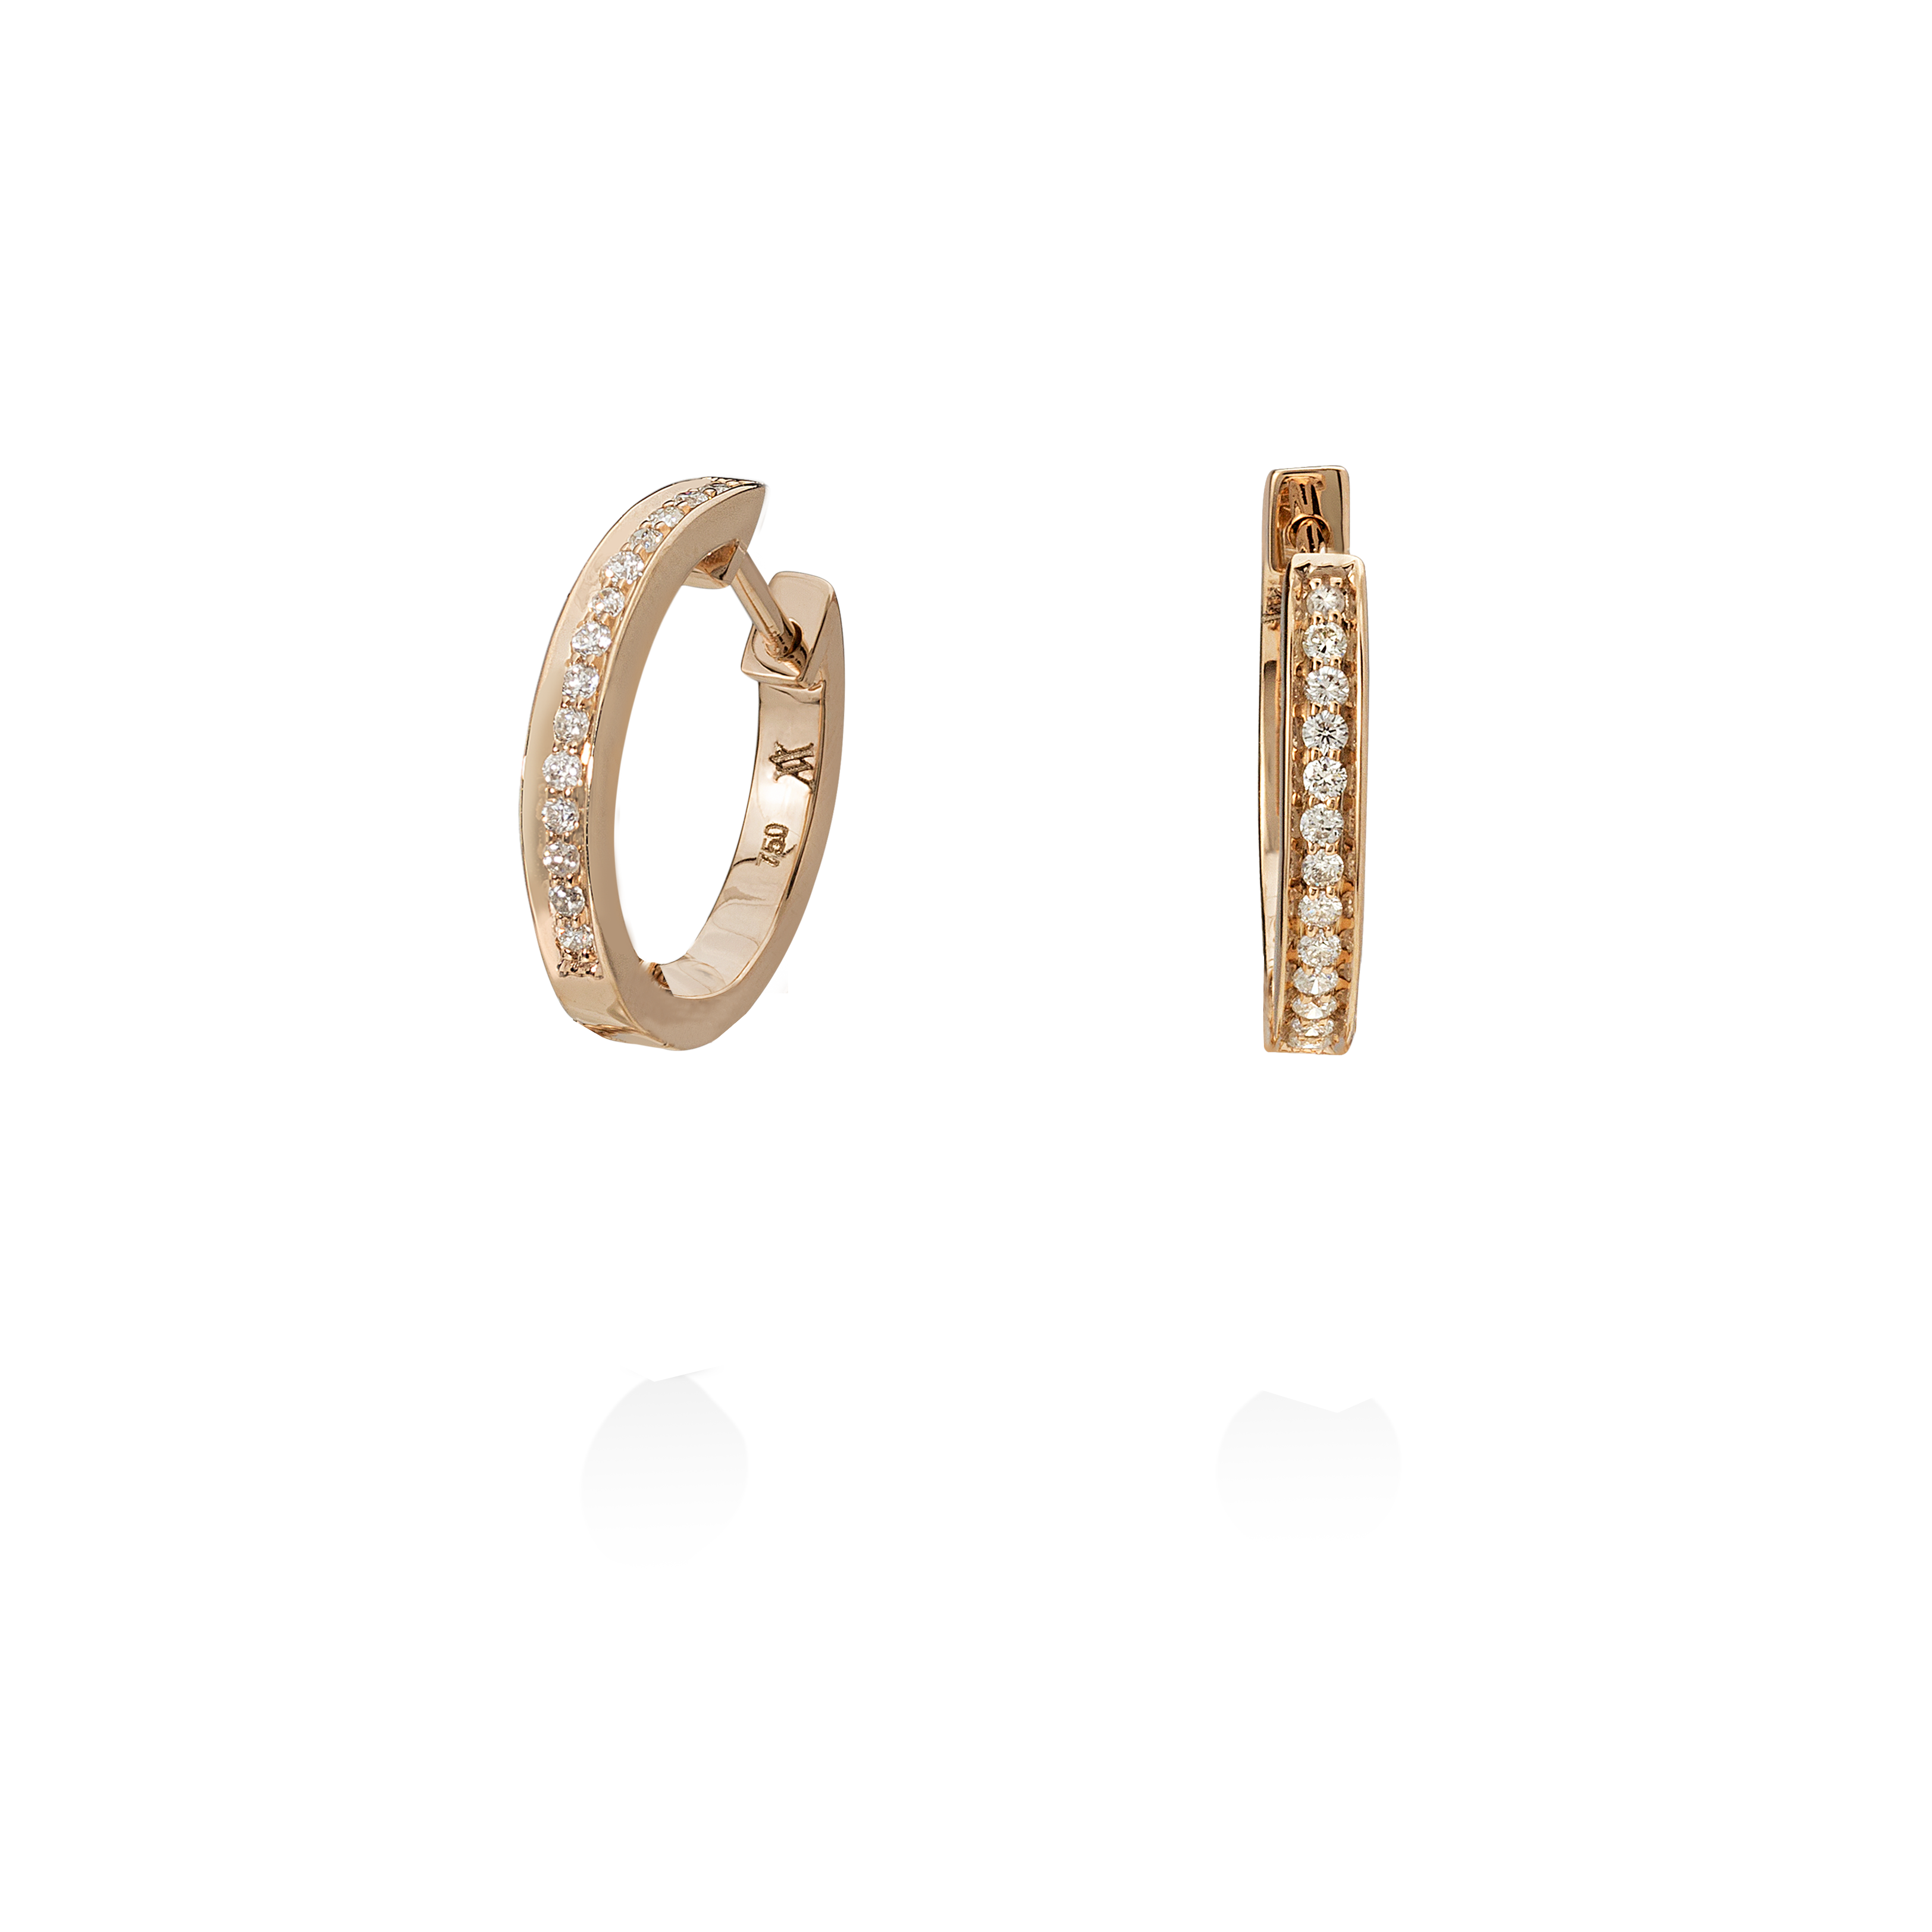 Single Diamond Hoops with Detachable Diamond Charm/Pendant- 18K Rose Gold by Aveen on curated-crowd.com